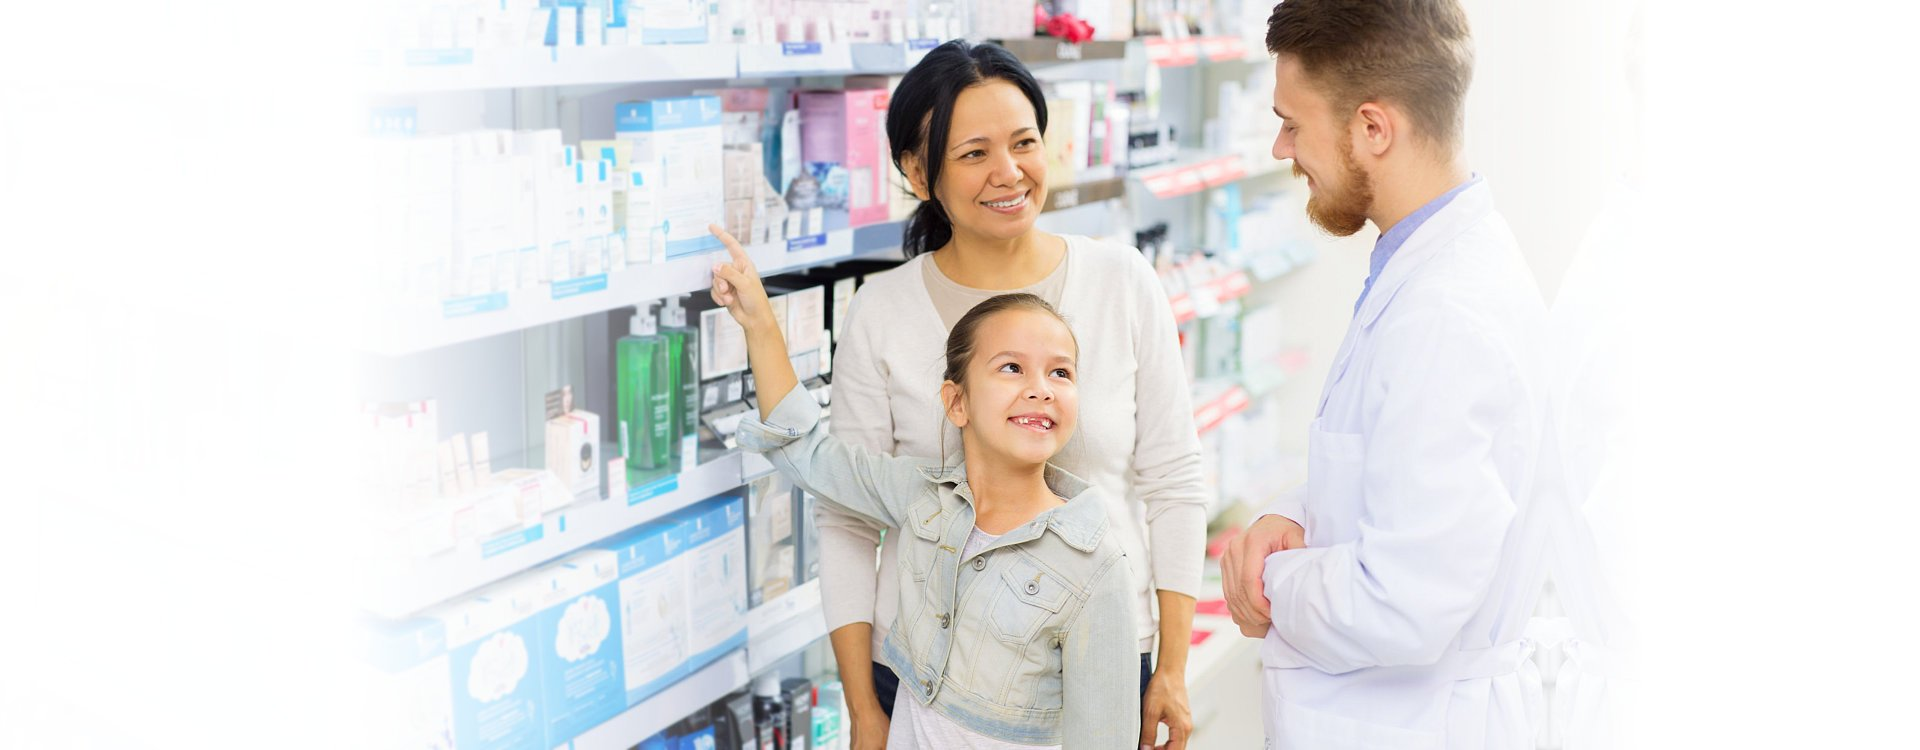 pharmacist with a little girl and her mom